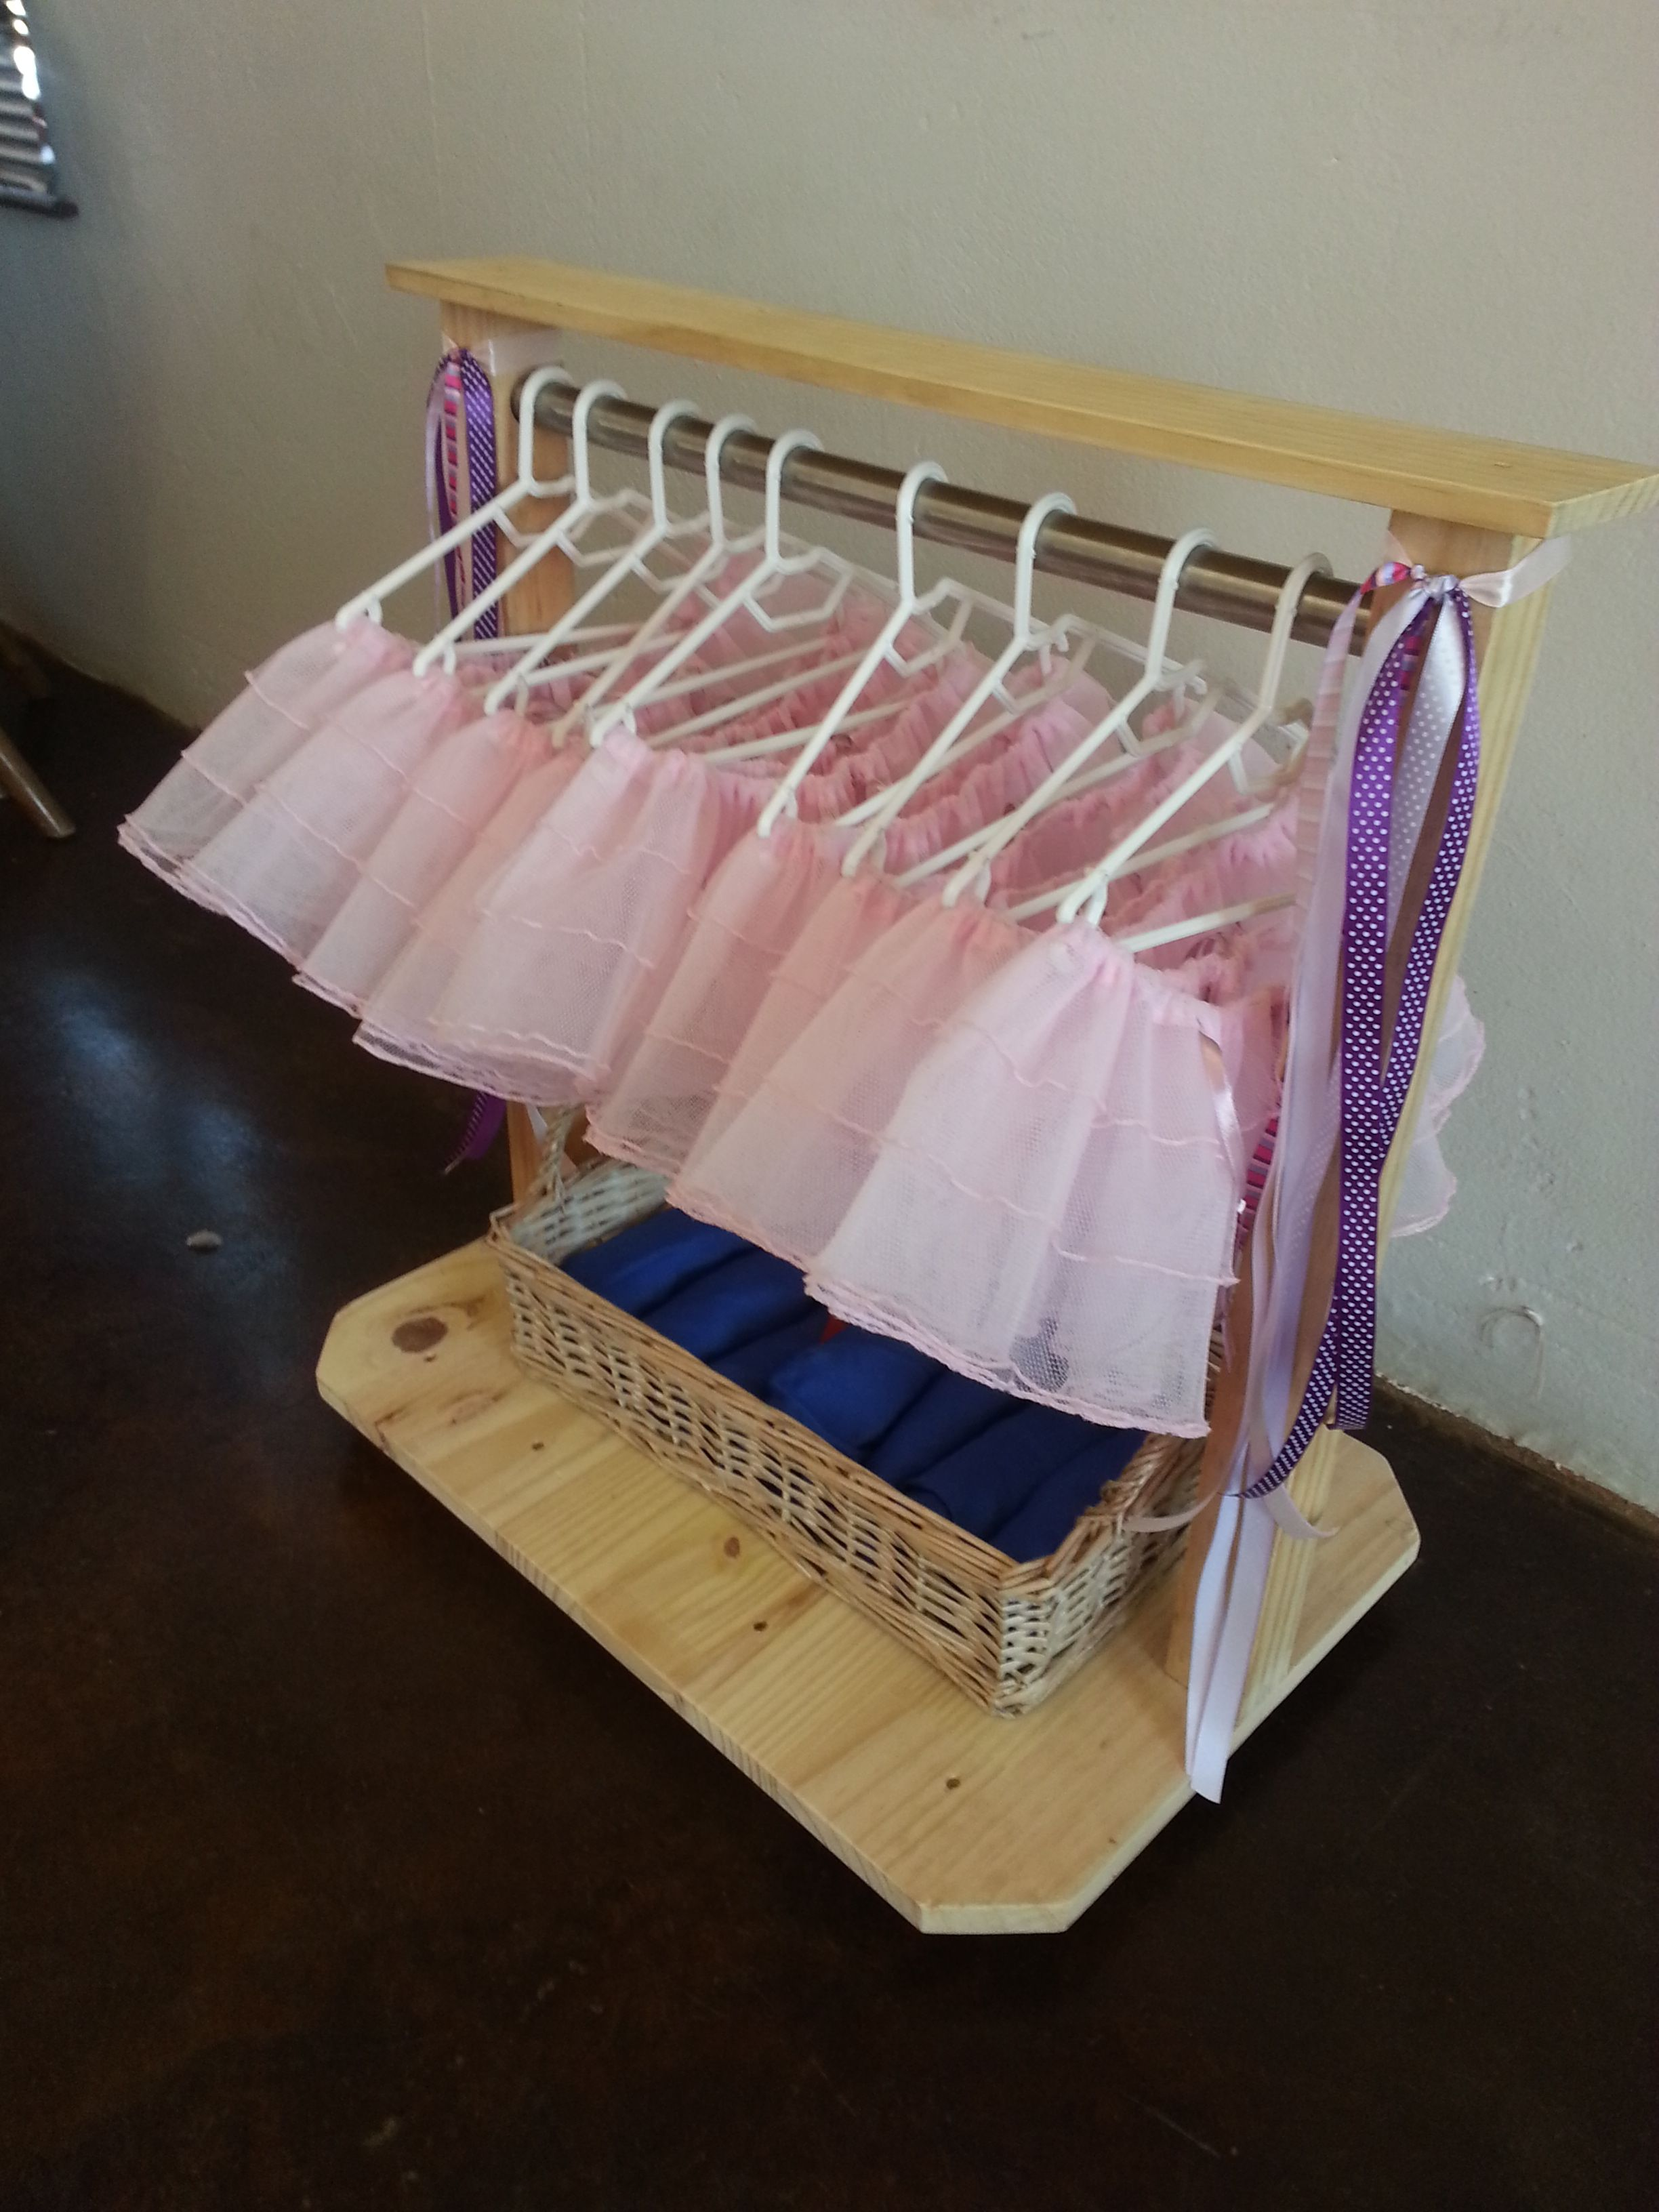 Ballet tutu's for each guest and superhero capes for the boys!